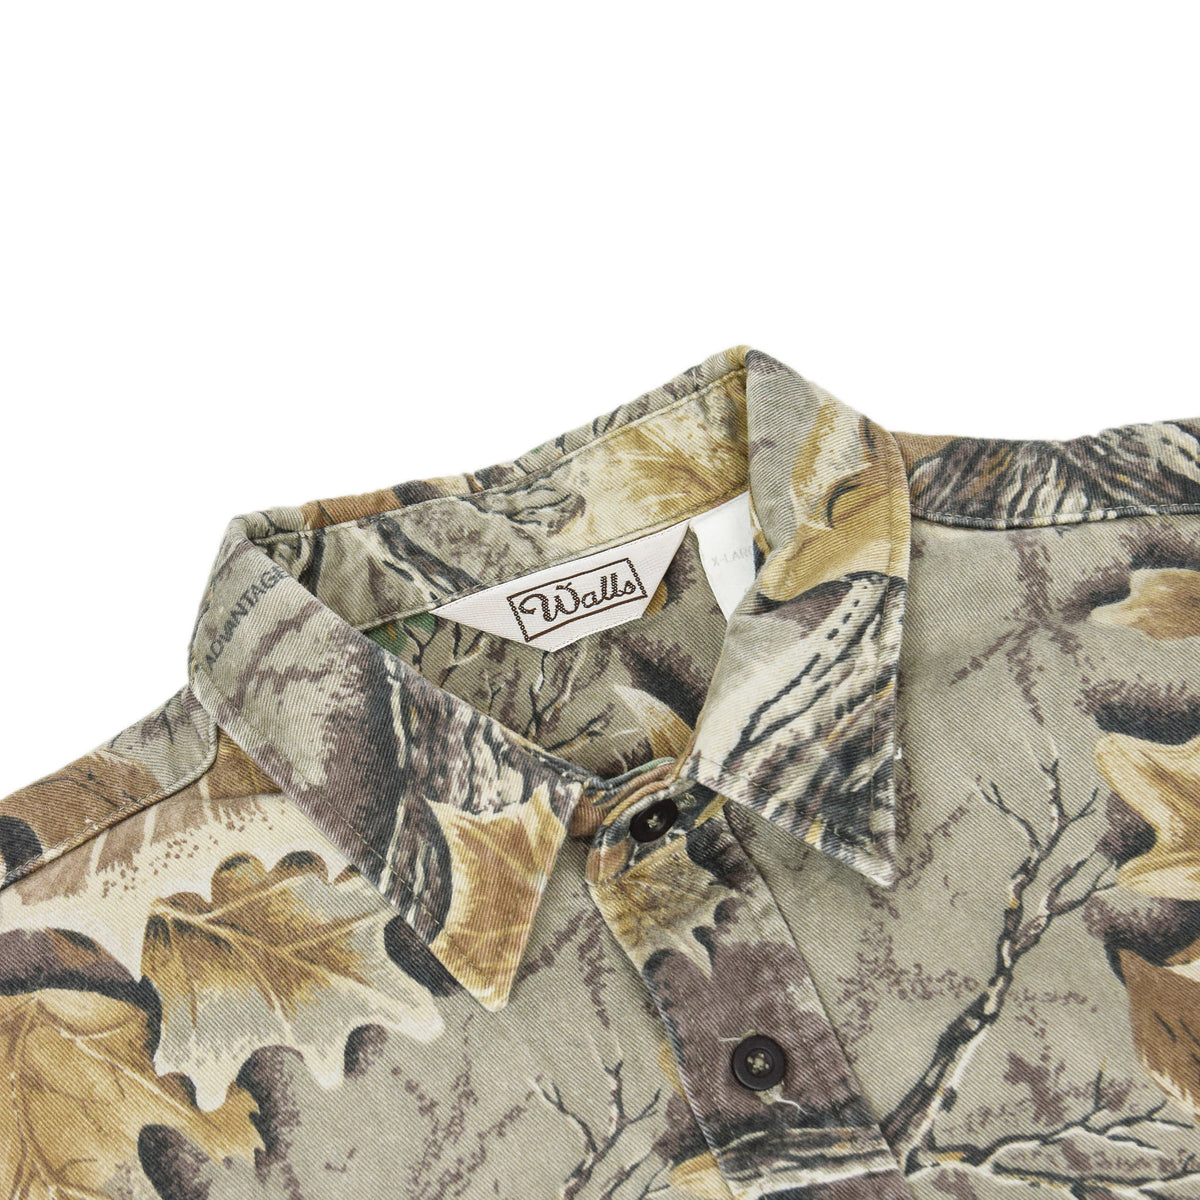 Vintage Wall's Leaf Camouflage Hunting Shooting Cotton Long Sleeve Shirt XL collar detail